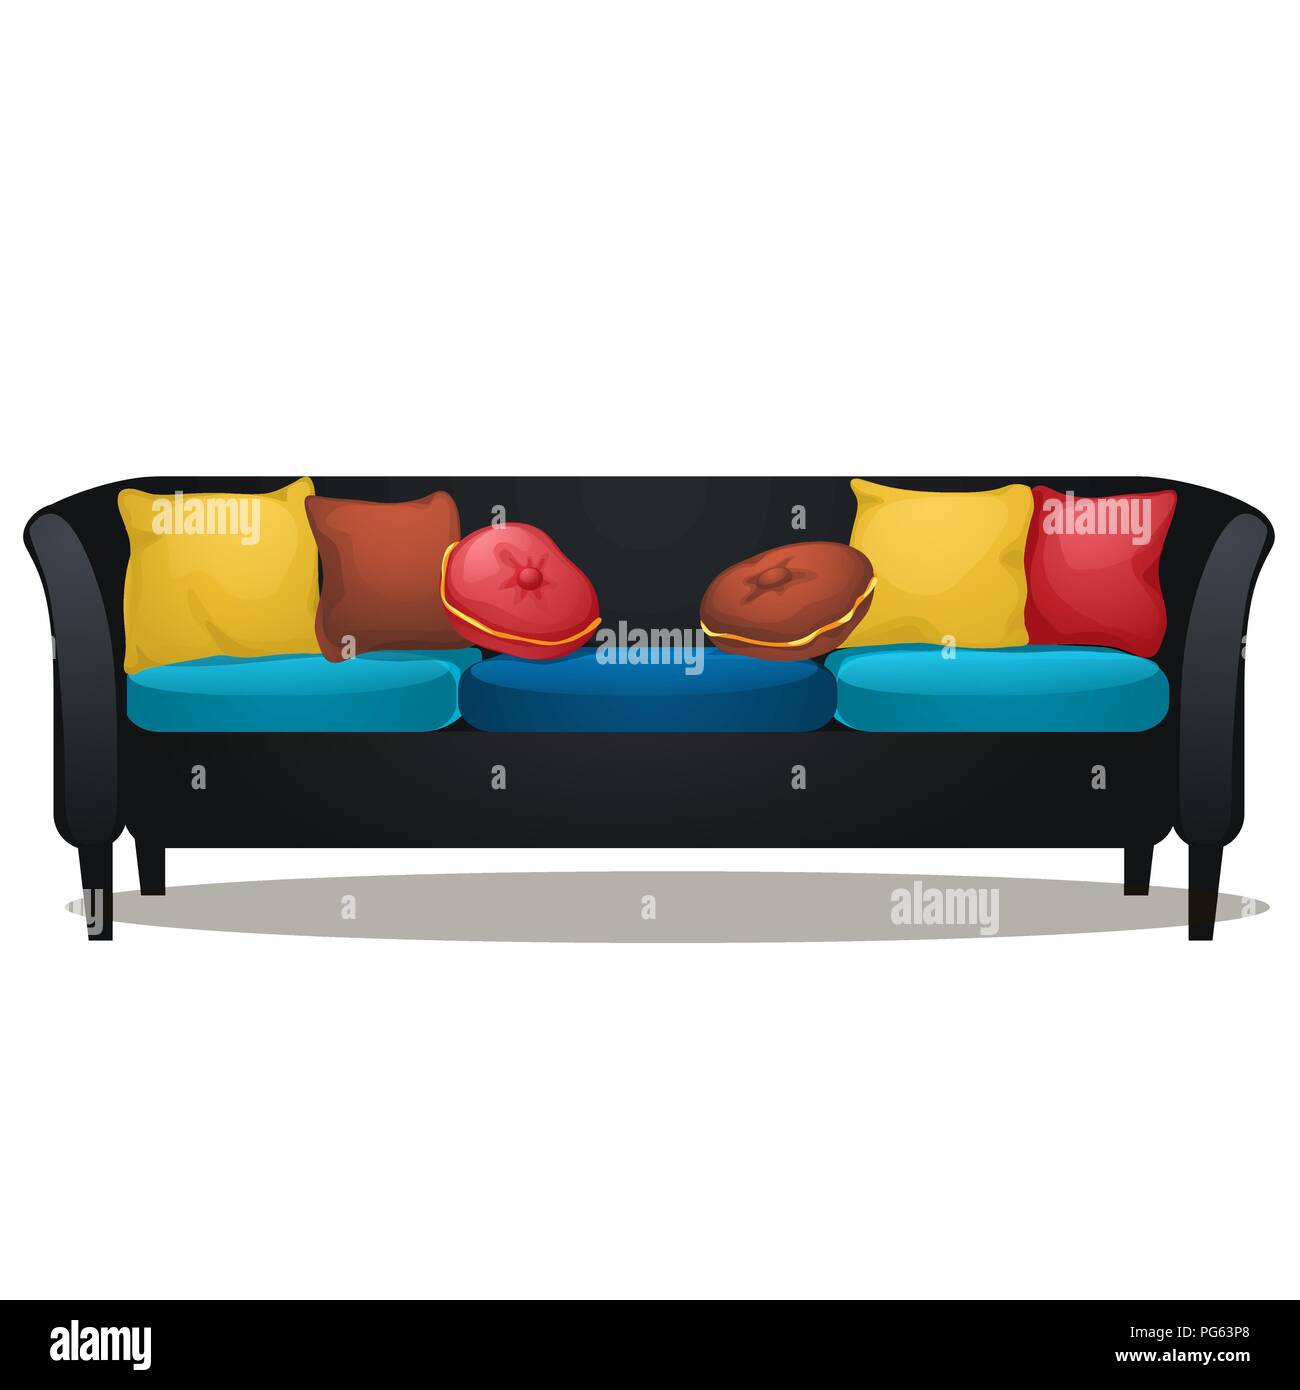 Black Sofa With Colored Soft Pillows Isolated On White Background